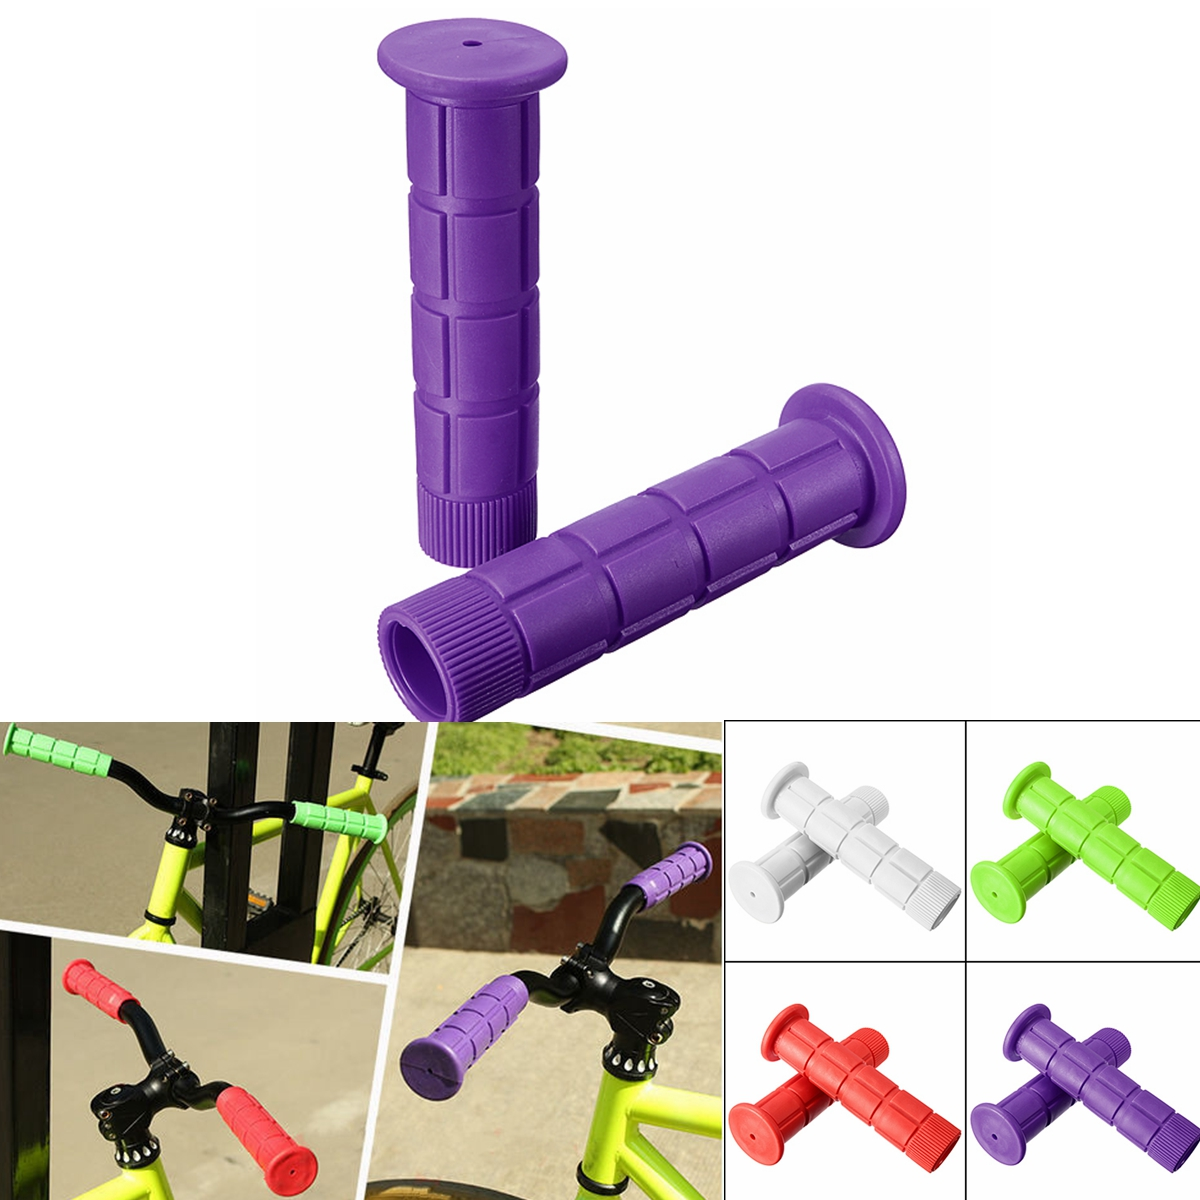 One Pair Cycling Mountain Bicycle Dirt Bike Skid-proof Soft Nonslip Handlebar Rubber Handlebar Grip Cover Colors:White/Purple/Red/Green